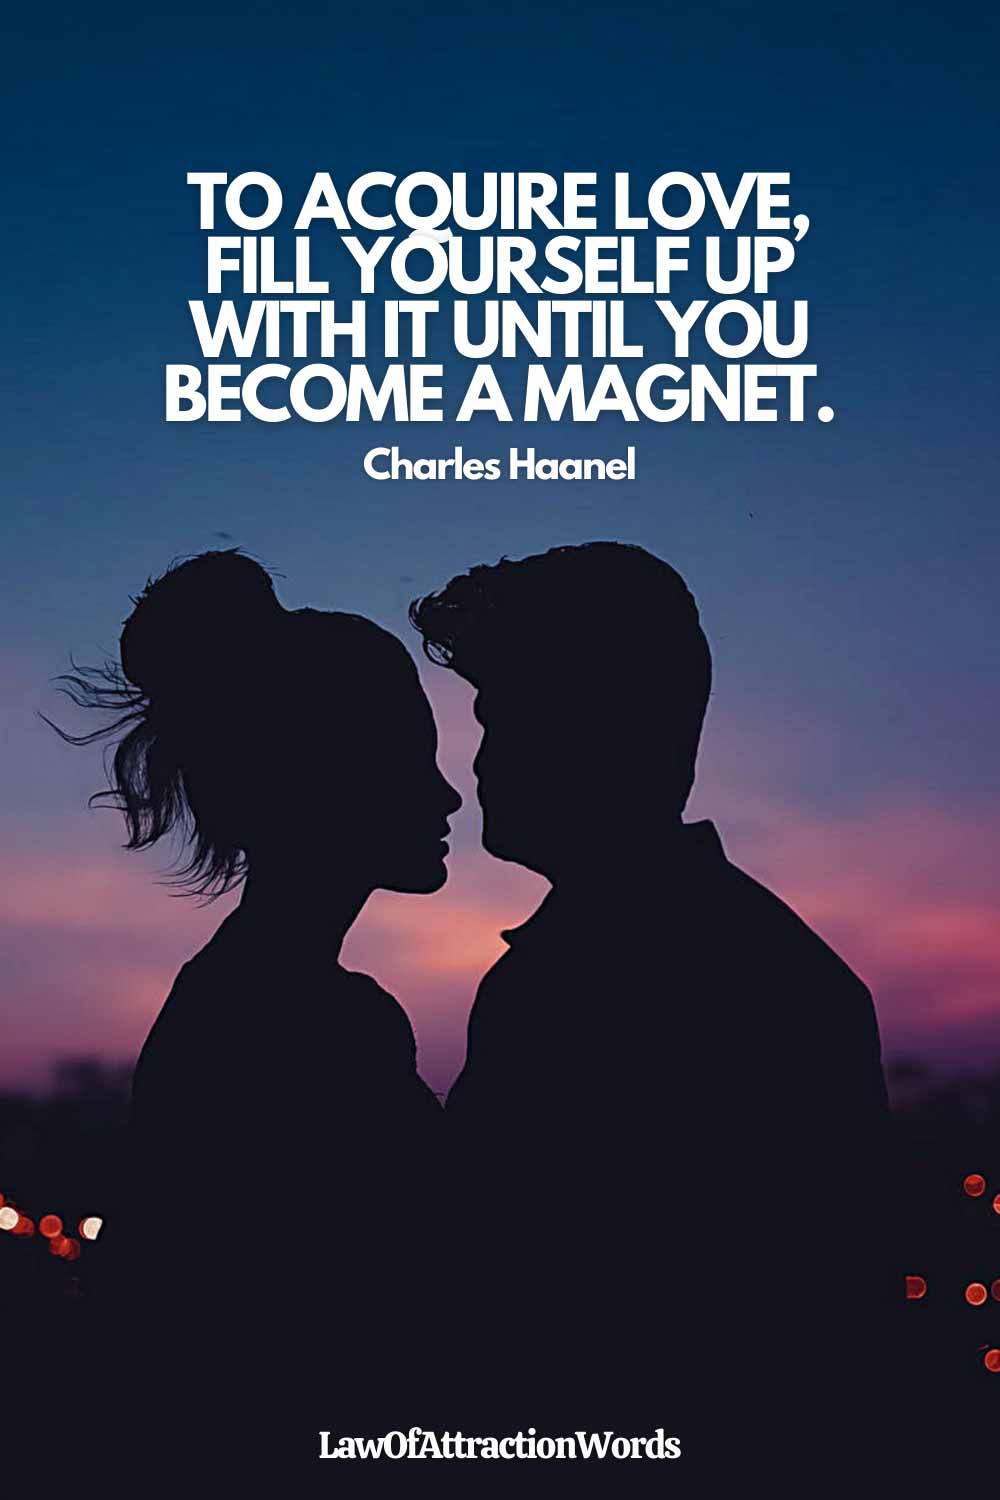 Best Law Of Attraction Quotes Love